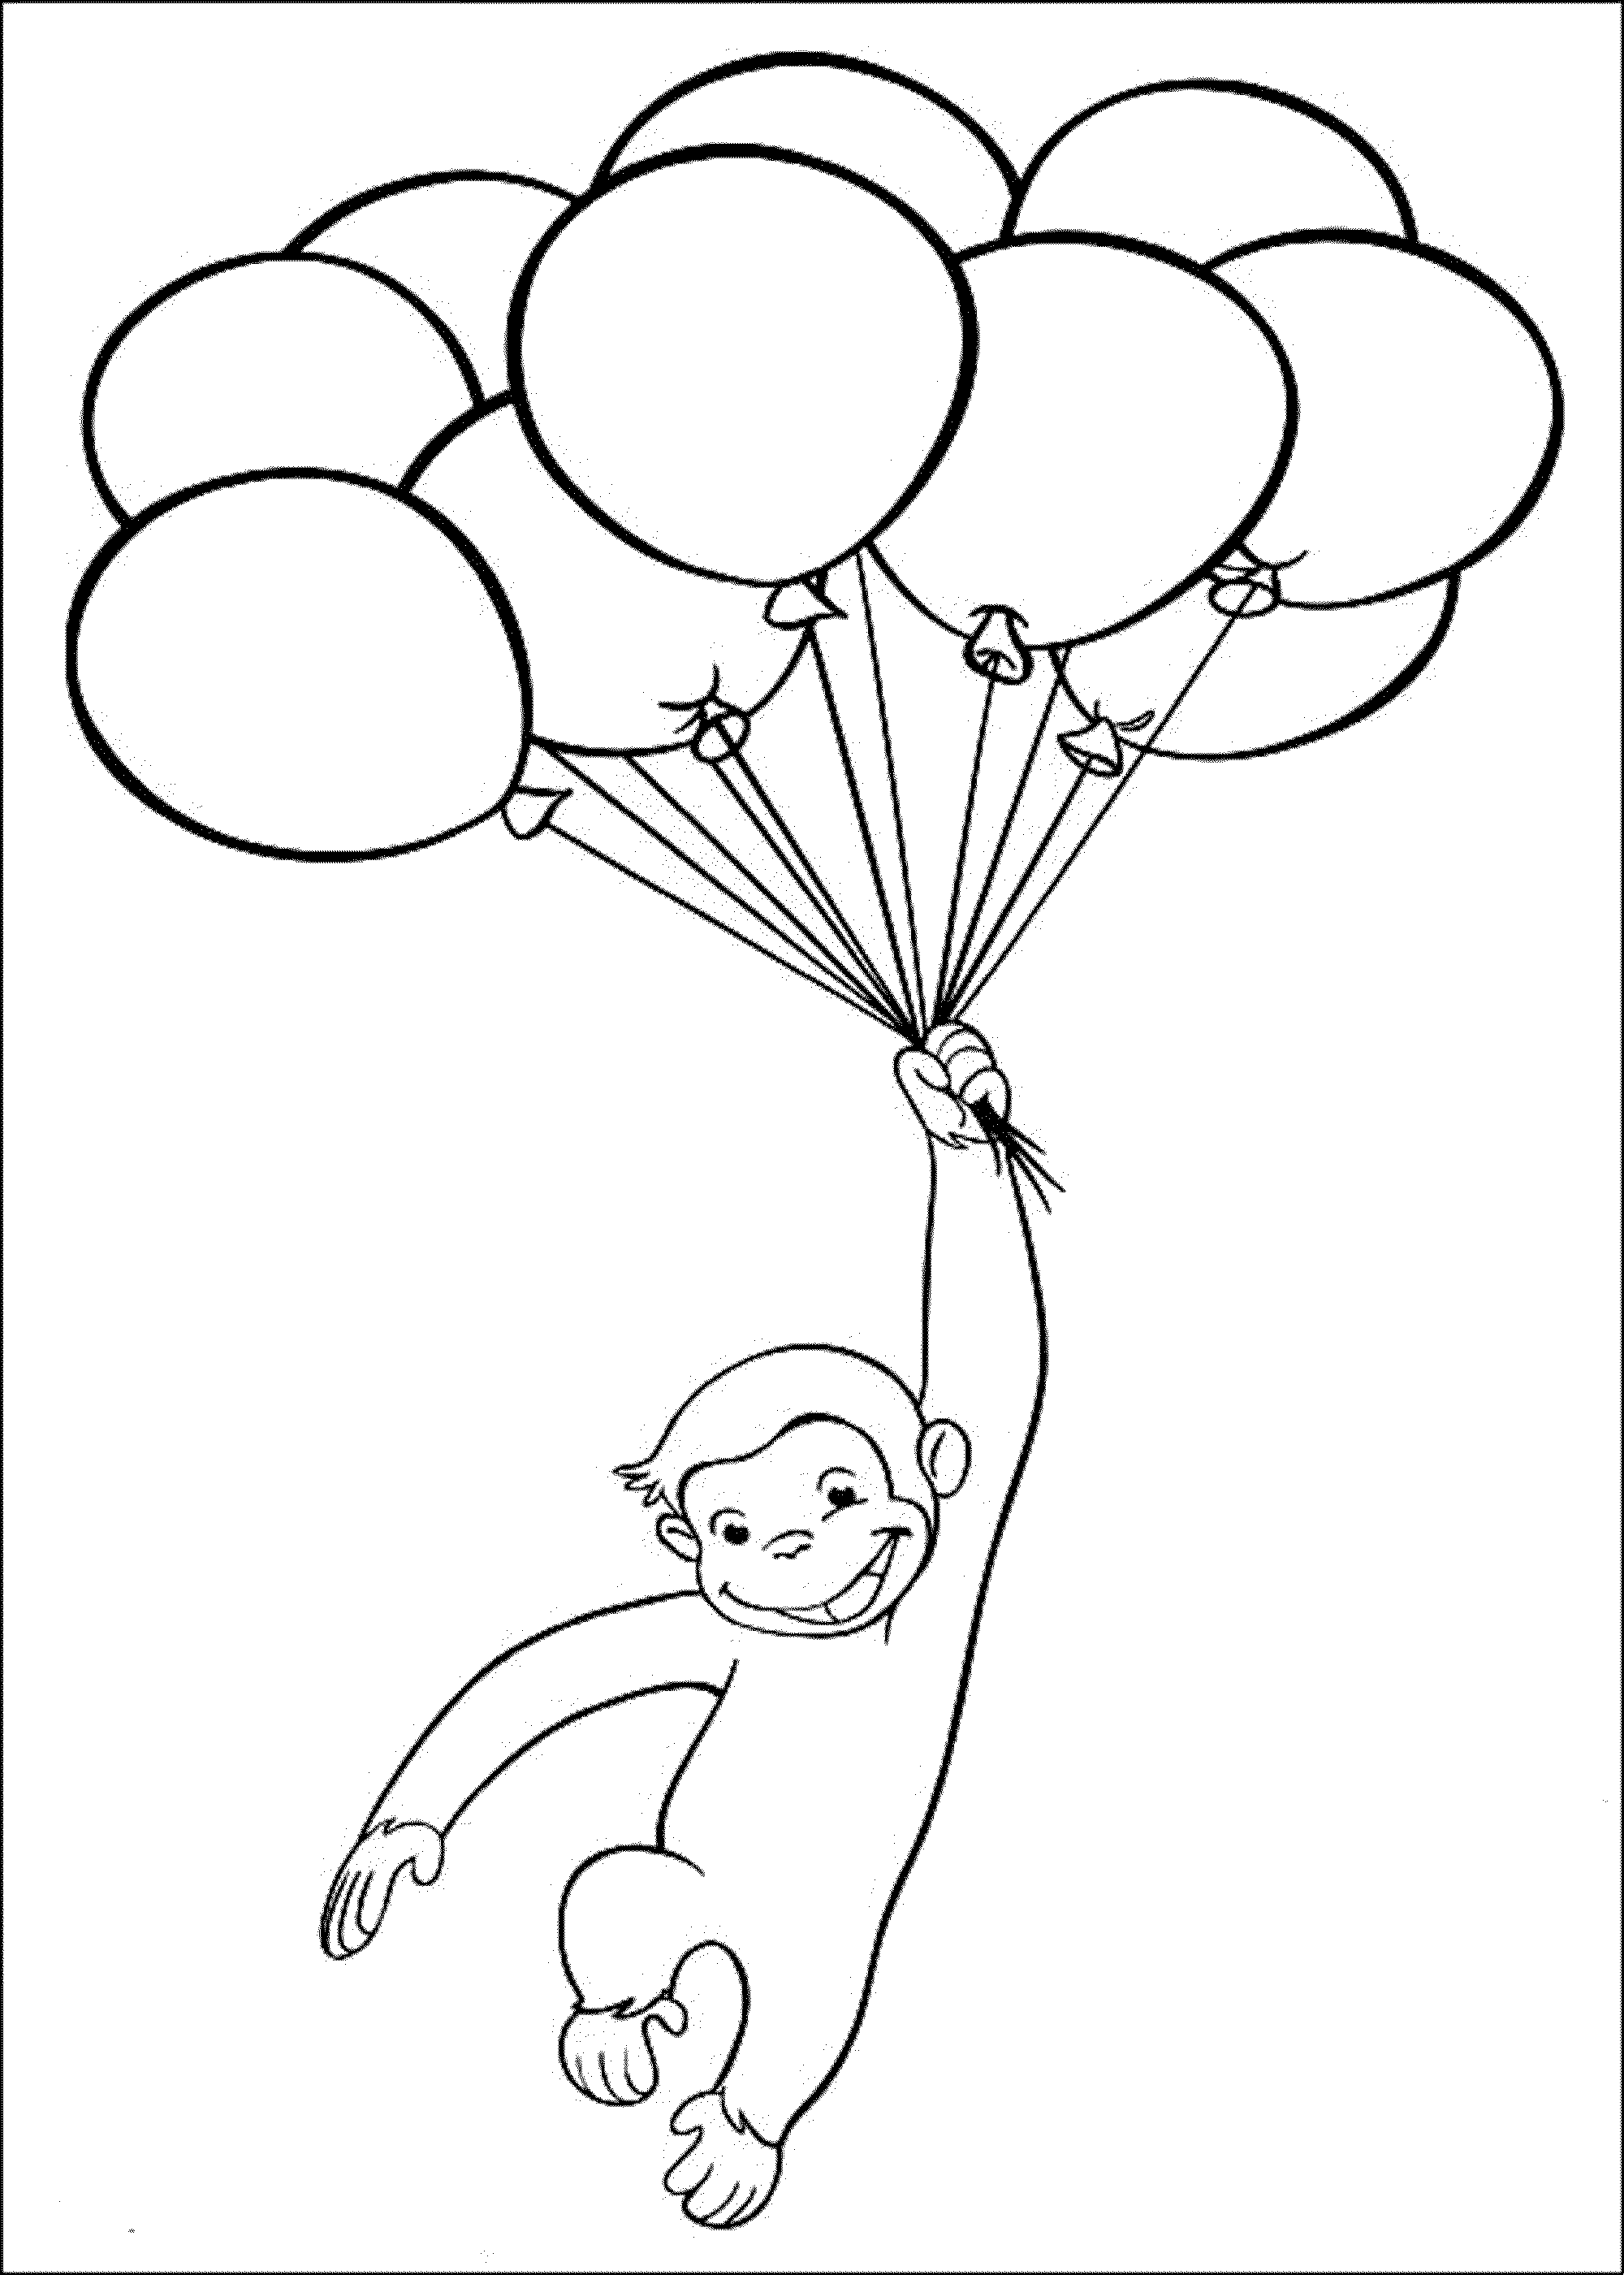 curious-george-playing-baloon-coloring-pages